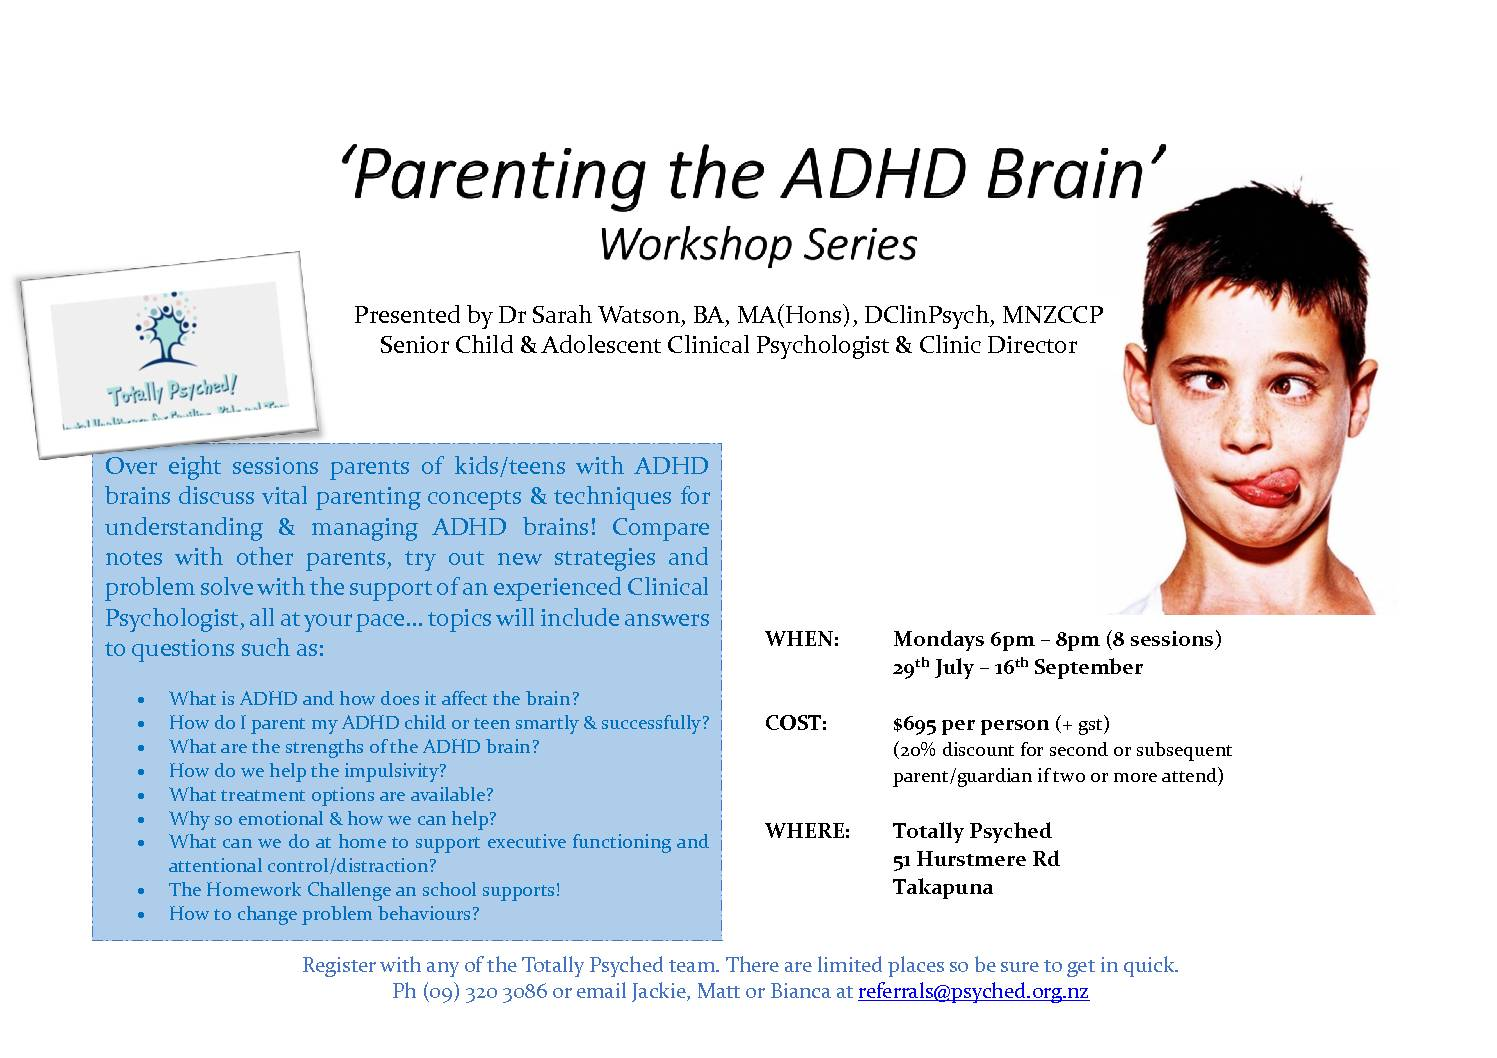 Parenting The ADHD Brain Workshop Series - Next one starting Term 3, July 29th 2019. Be in quick! | Totally Psyched